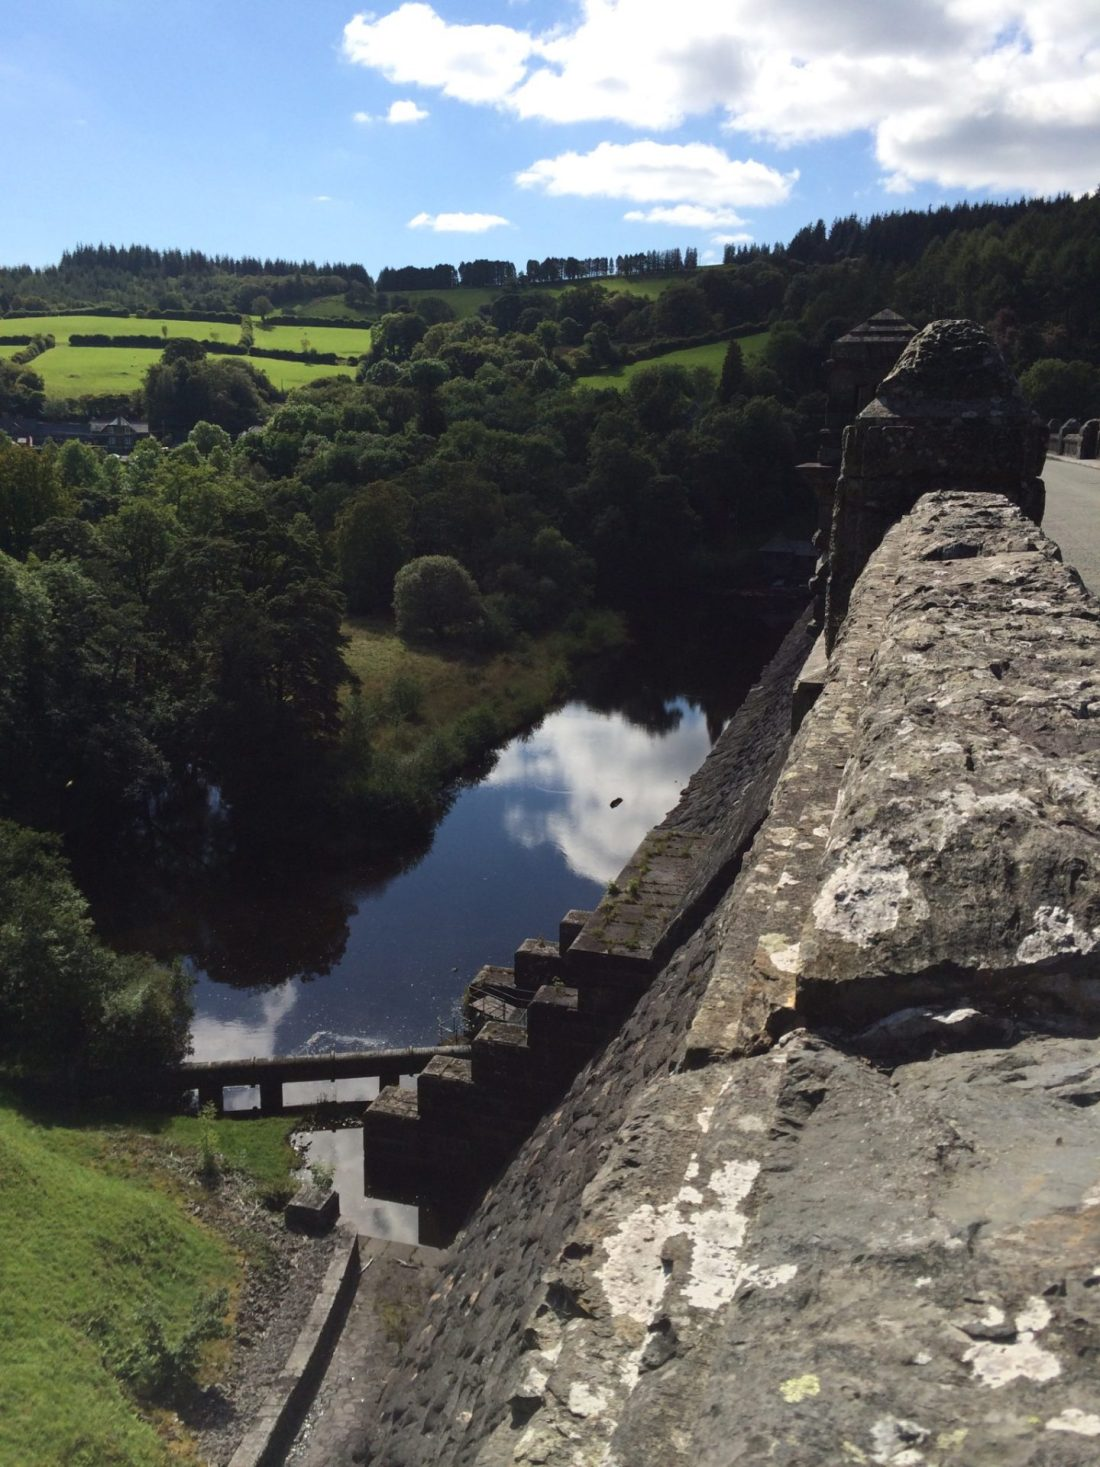 Overlooking the bridge at Lake Vyrnwy, Wales